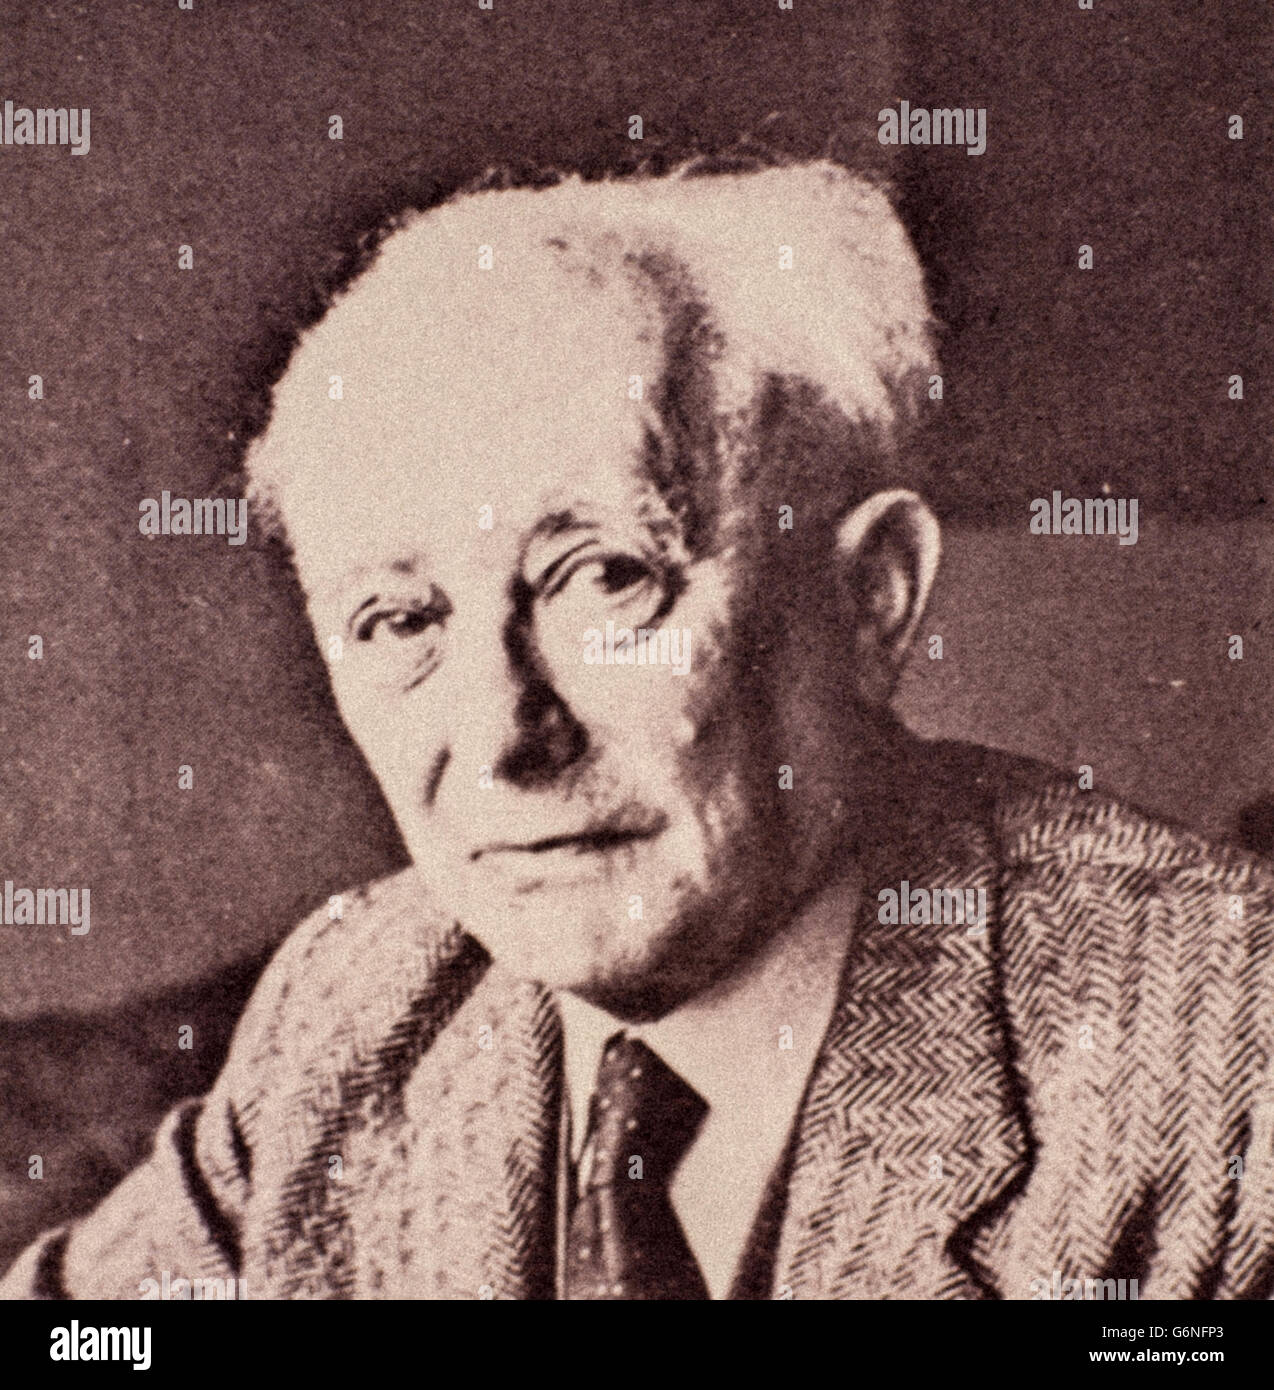 Max Born (Wroclaw, December 11, 1882 - Göttingen, January 5, 1970) was a German physicist and mathematician - Stock Image